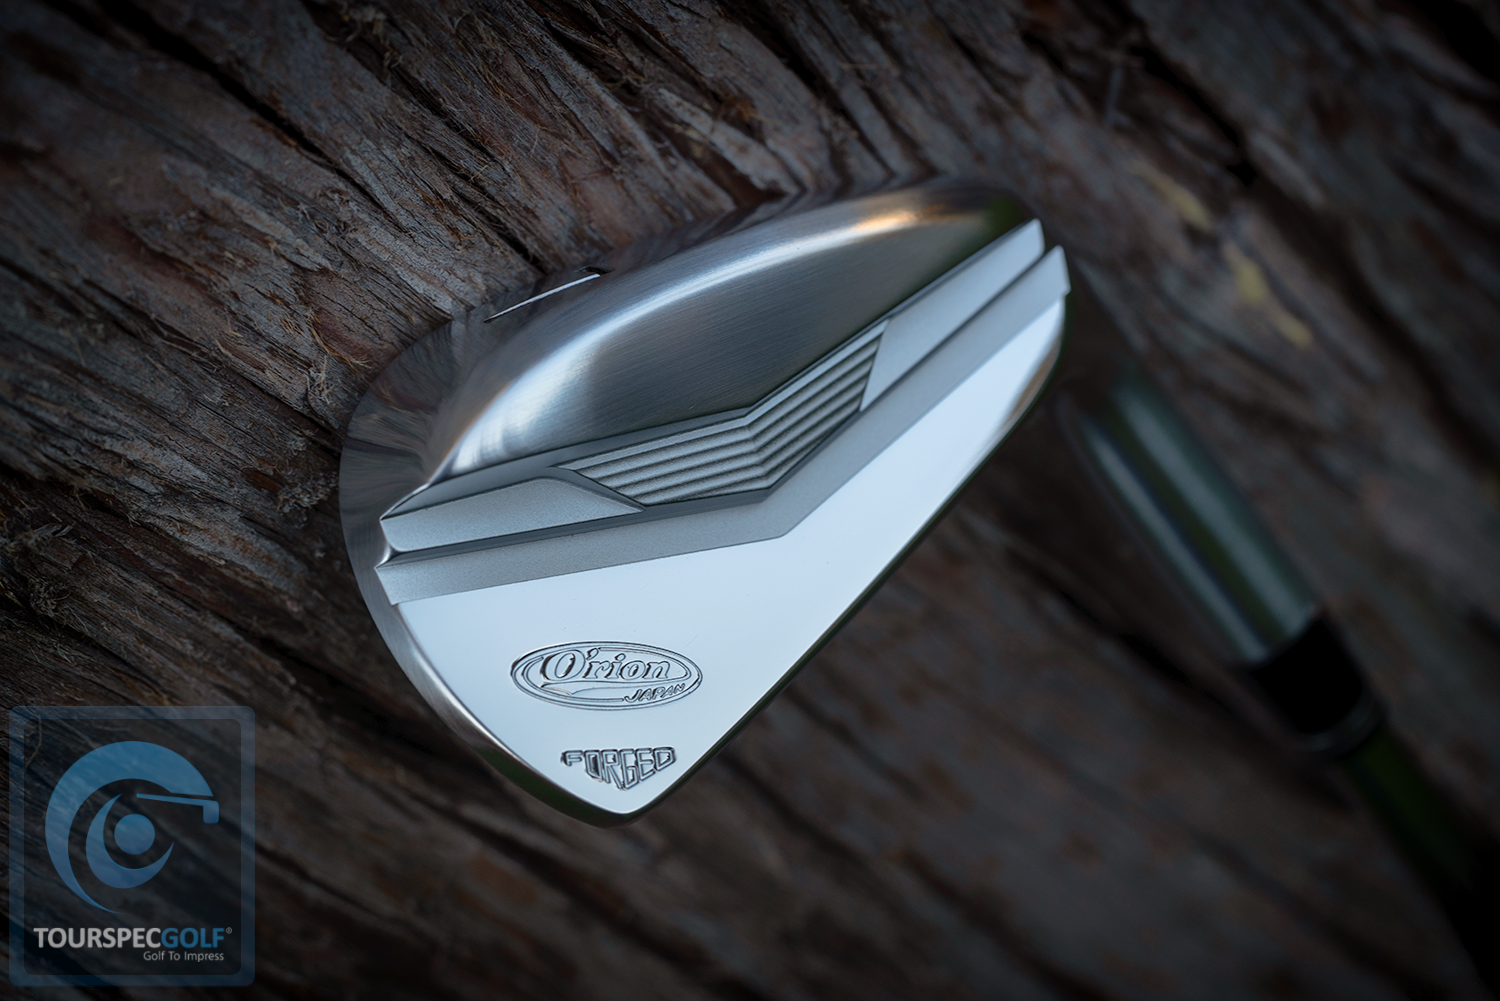 CGS-Orion-Golf-Clubs-MB-Irons2.png